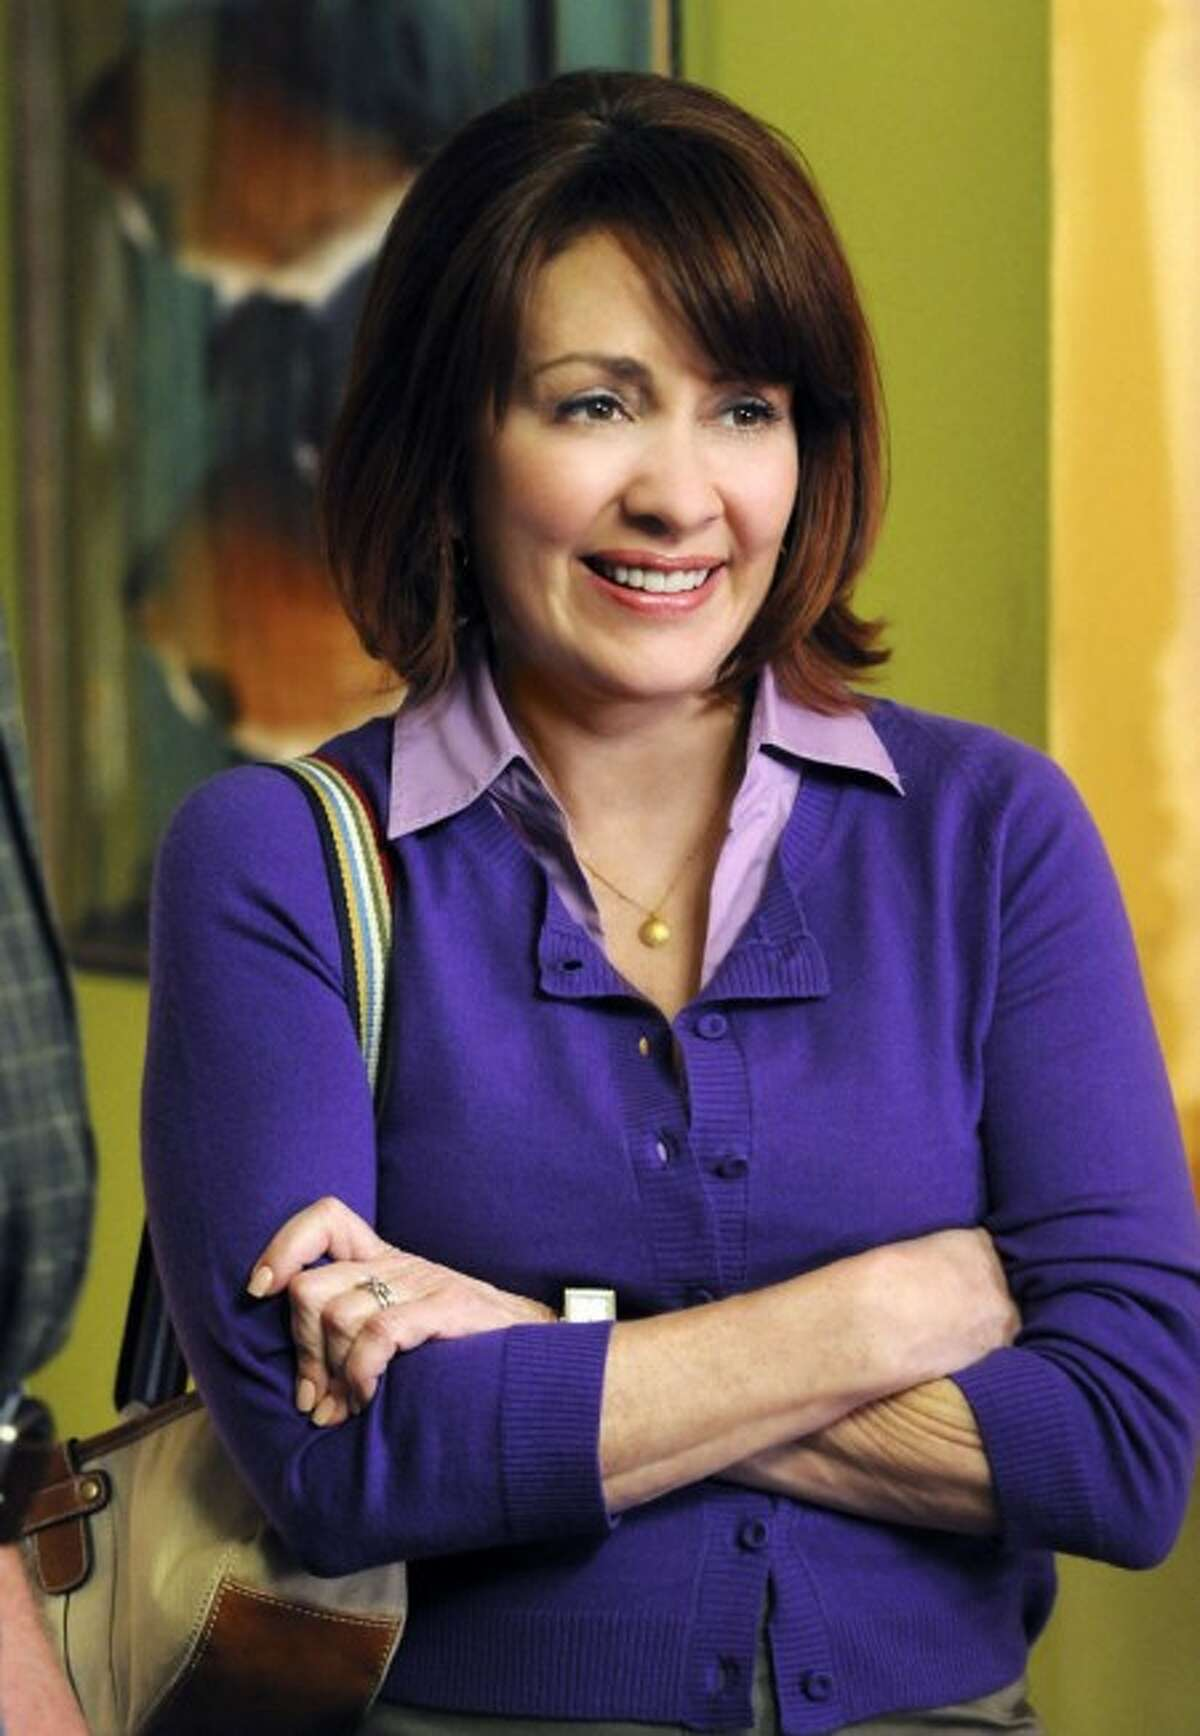 Patricia Heaton portrays Frankie Heck in the family comedy,